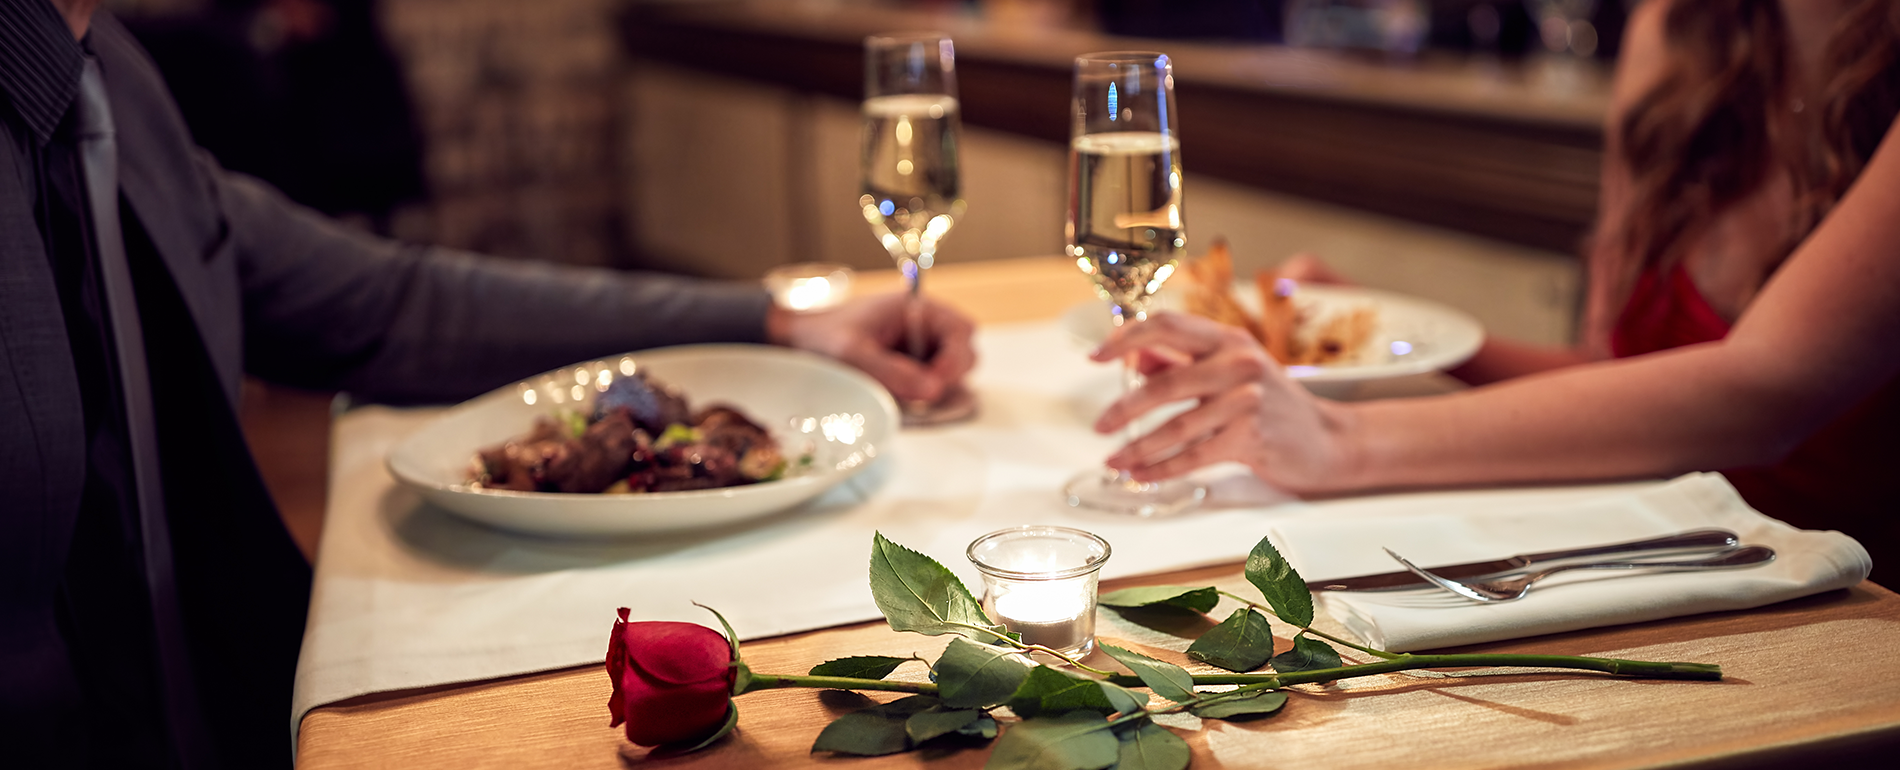 9 Ways to Make Valentine's Day Special in 2021